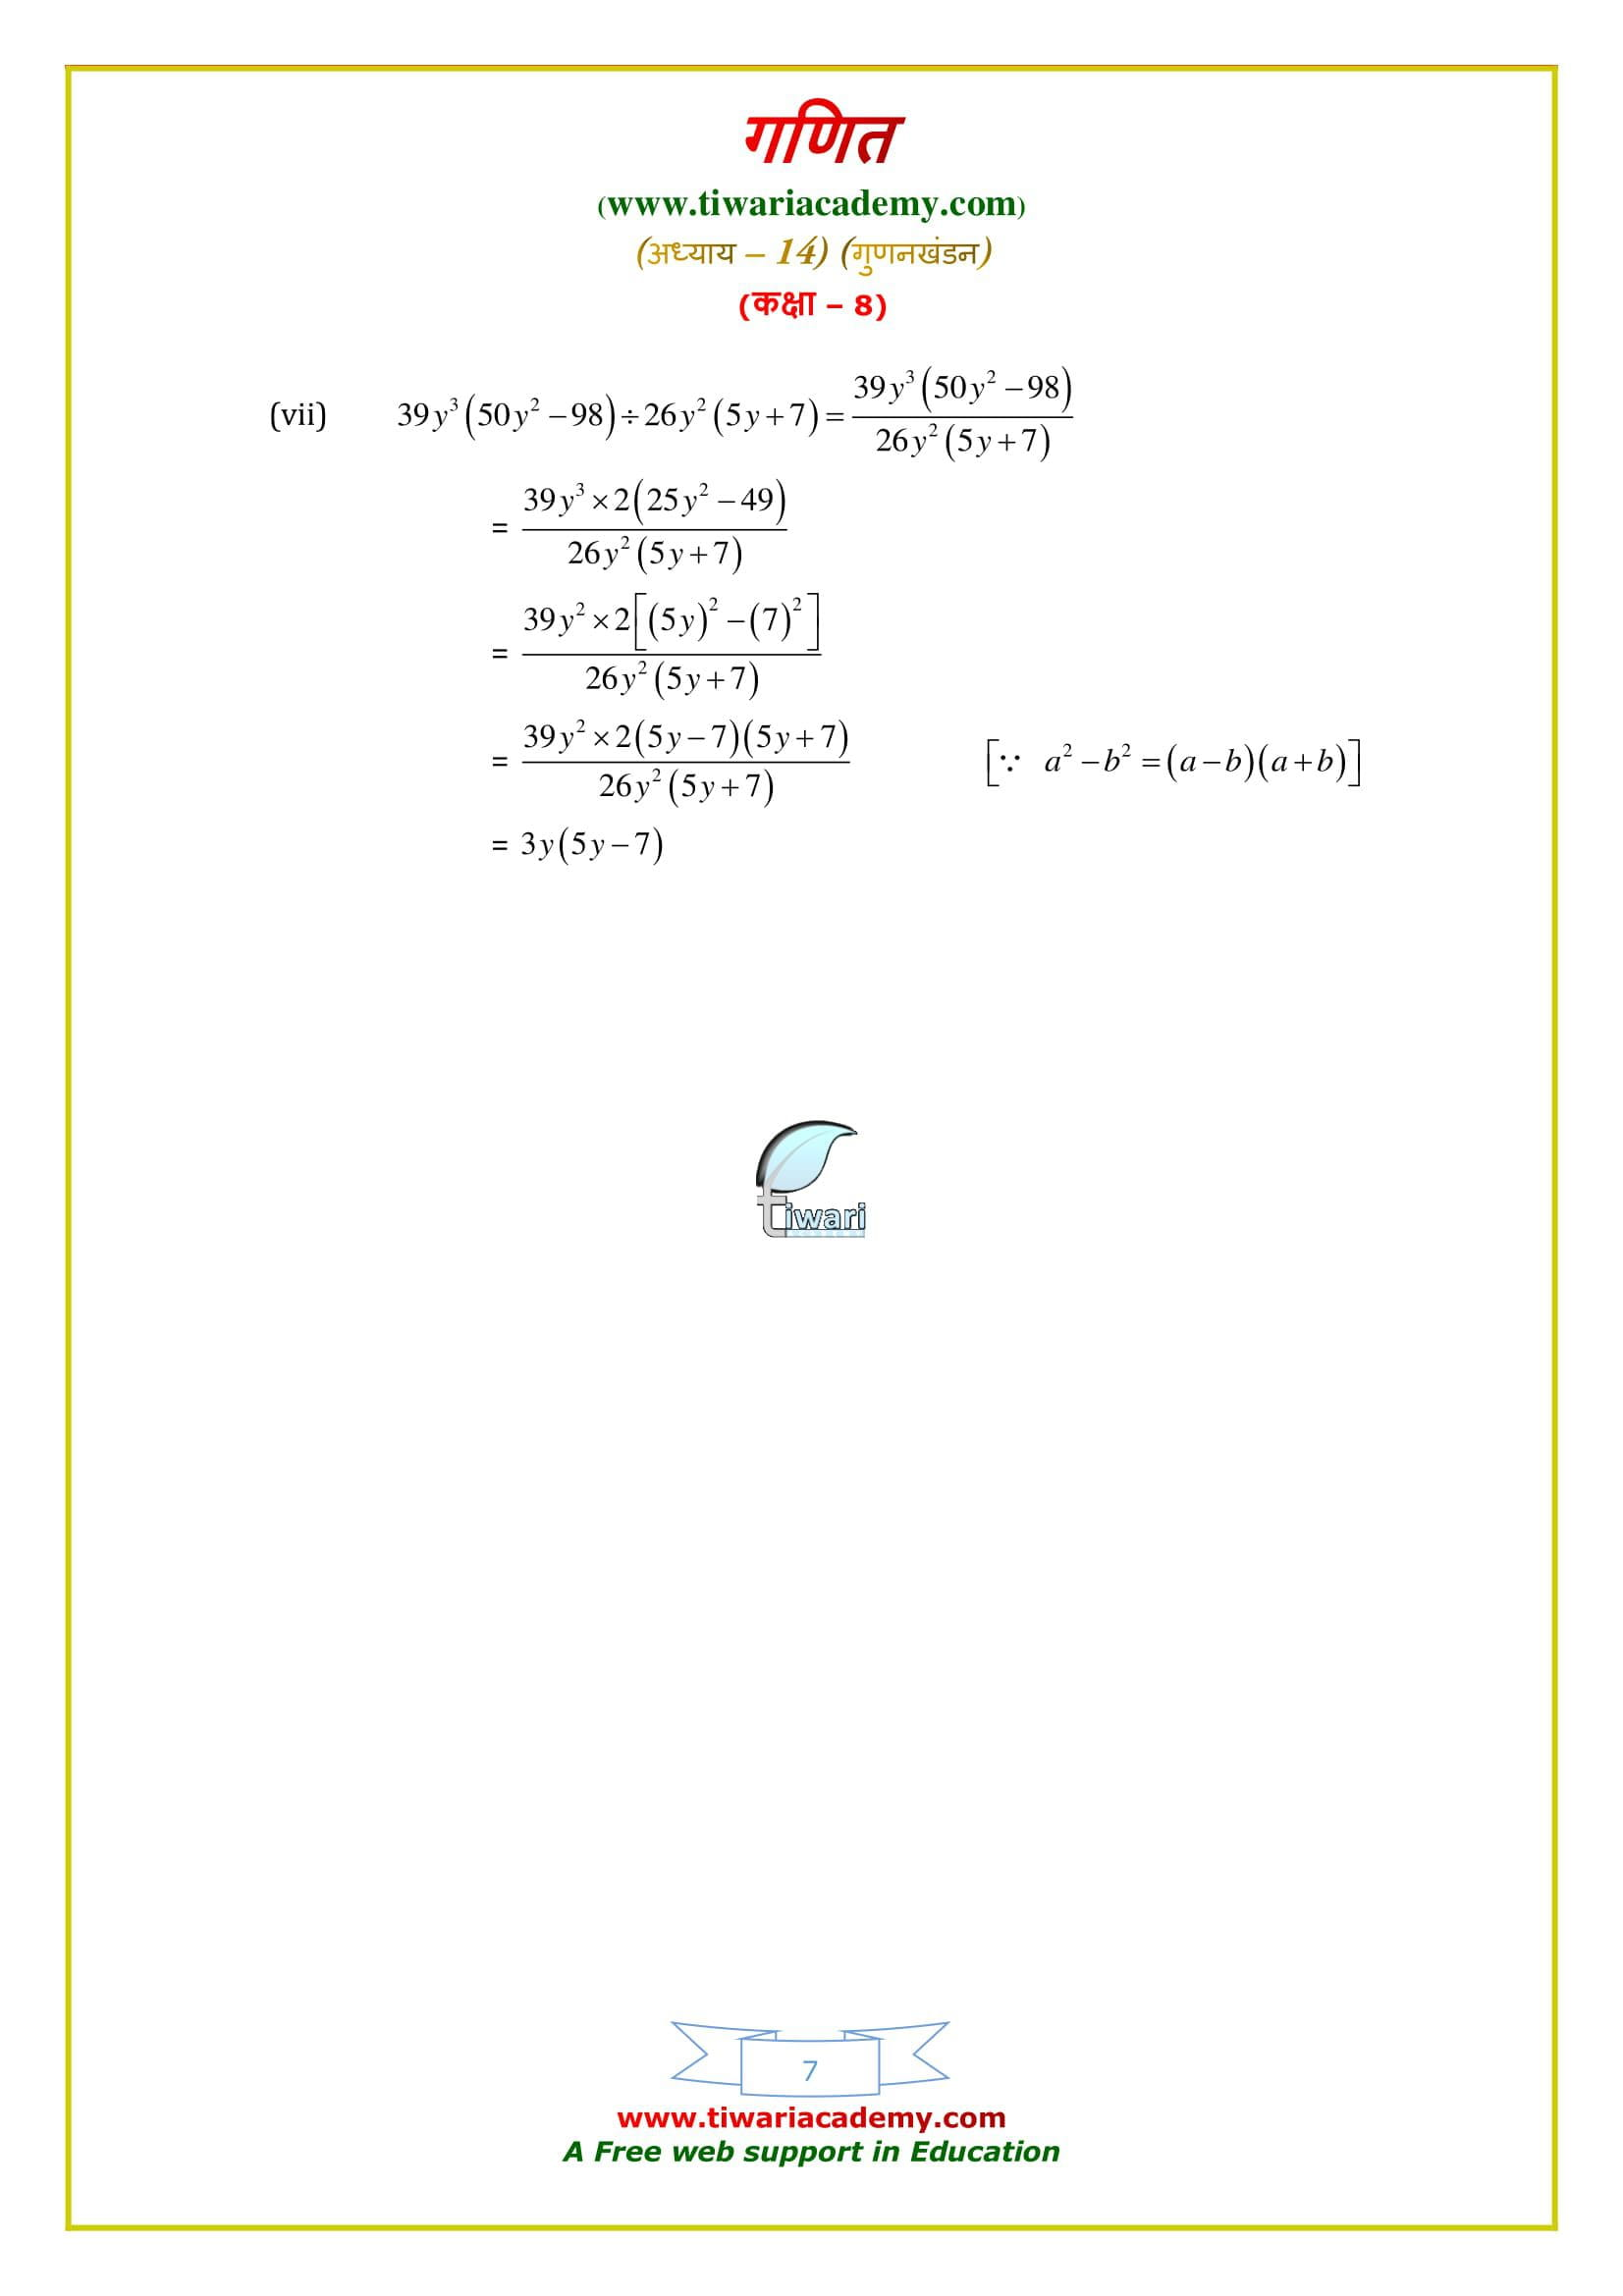 8 Maths Exercise 14.3 solutions updated for cbse syllabus 2018-19.